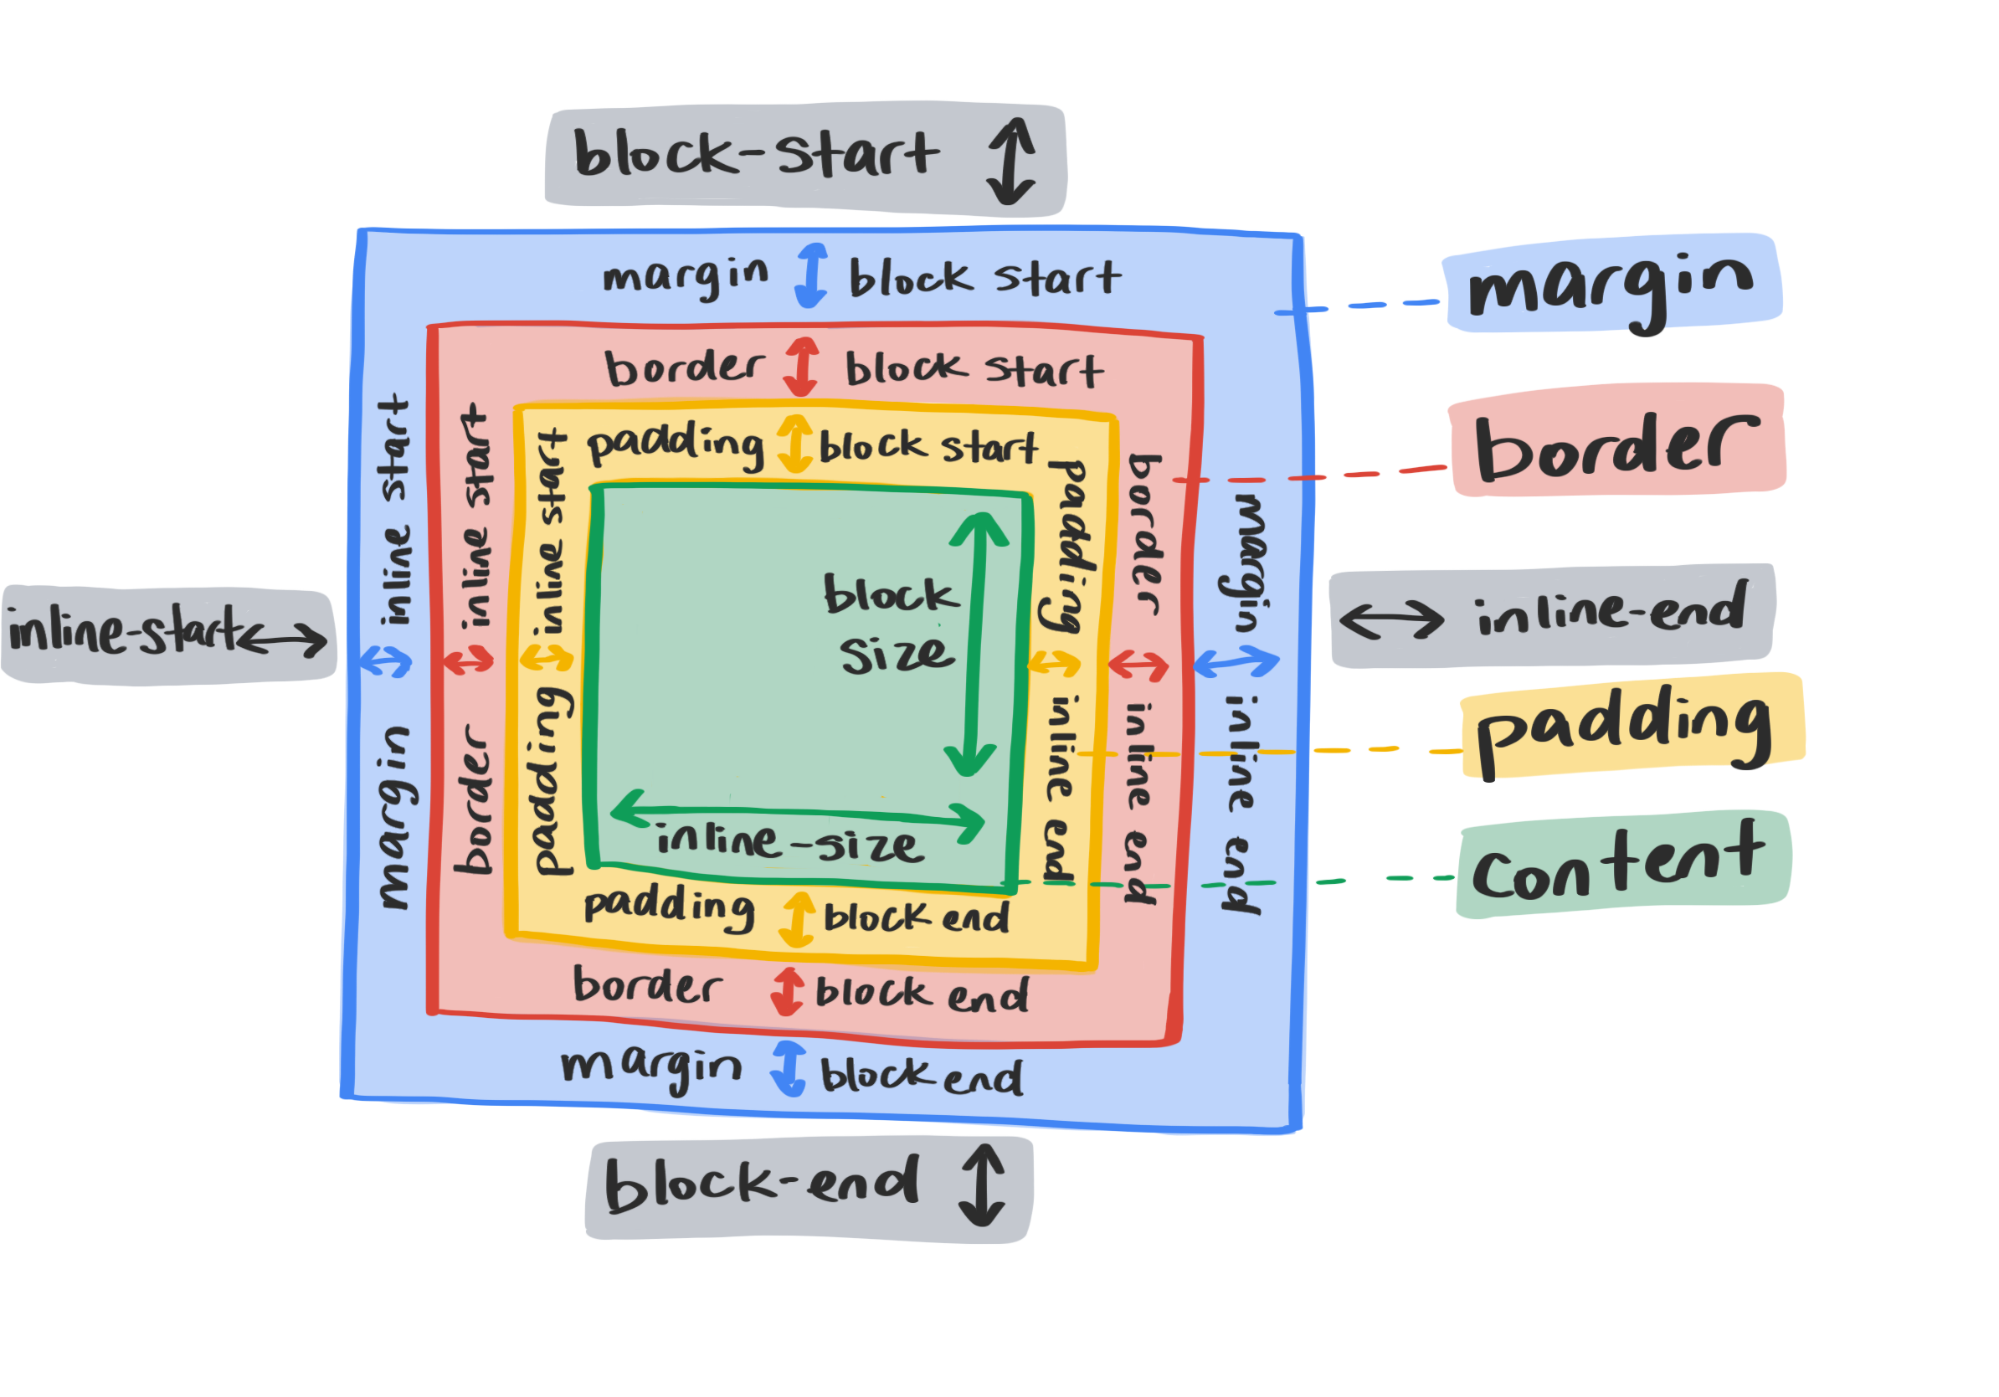 A diagram showing new CSS logical layout properties.